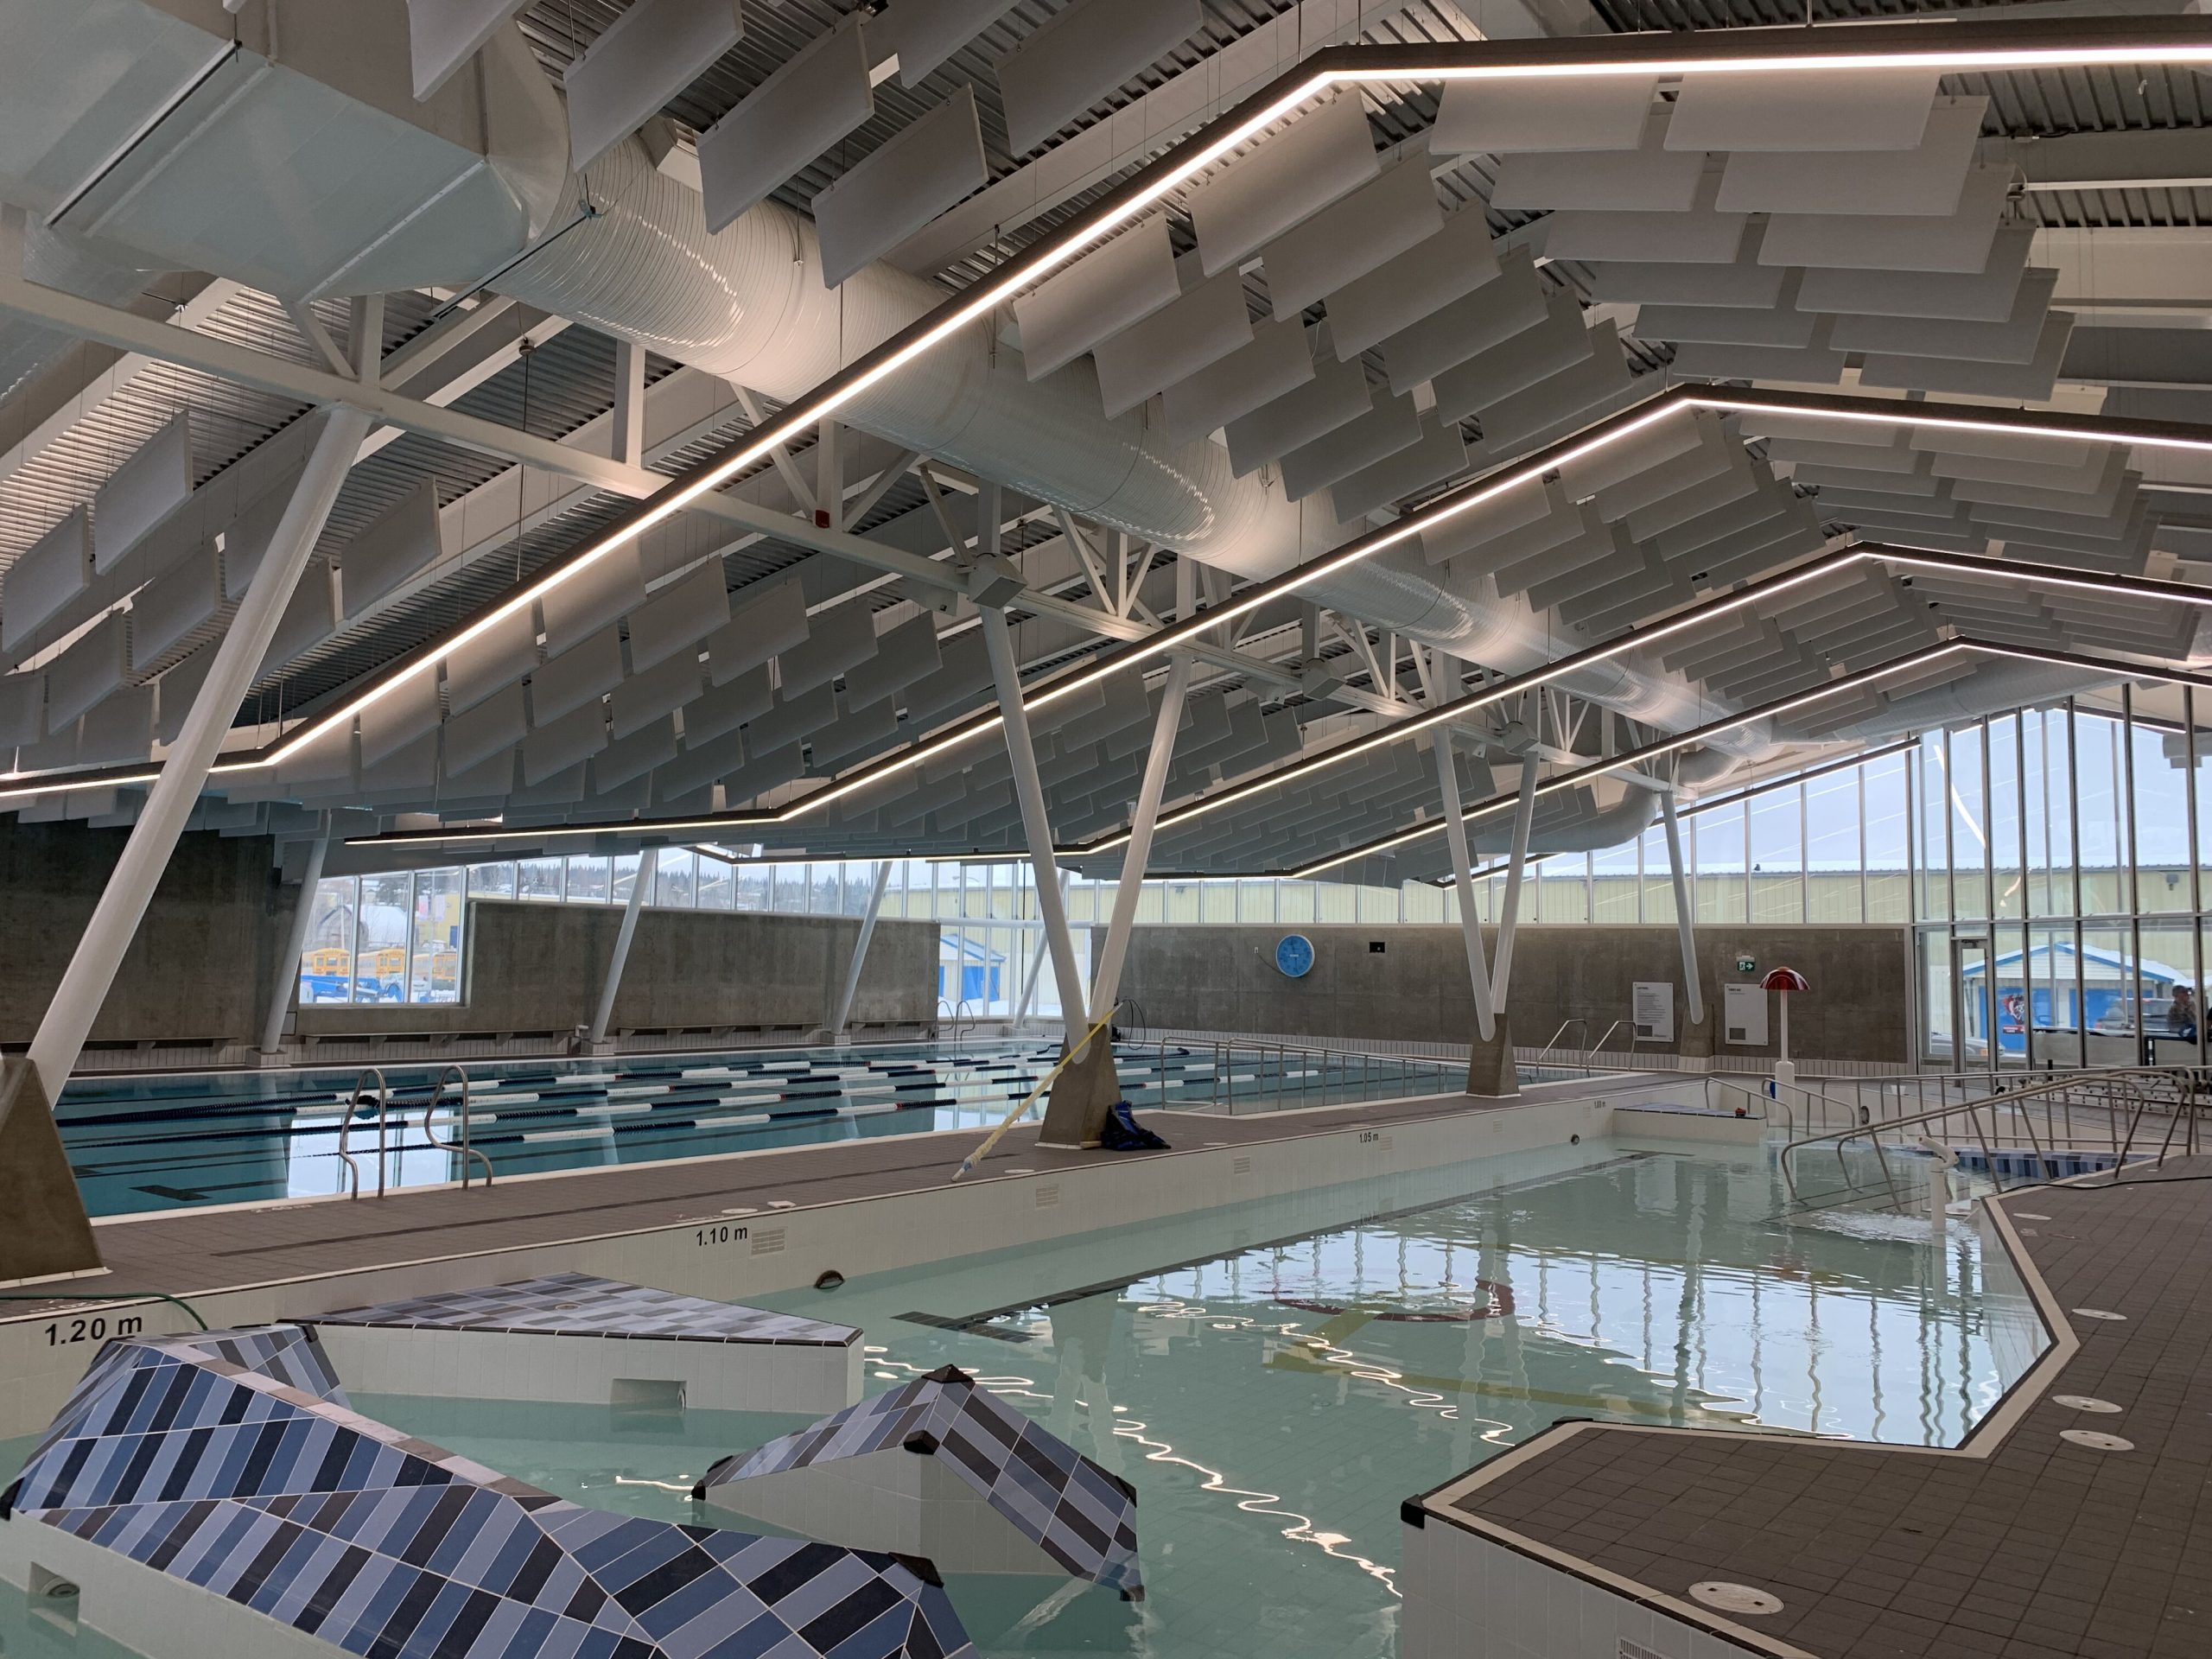 Vanderhoof Aquatic Centre - Interior